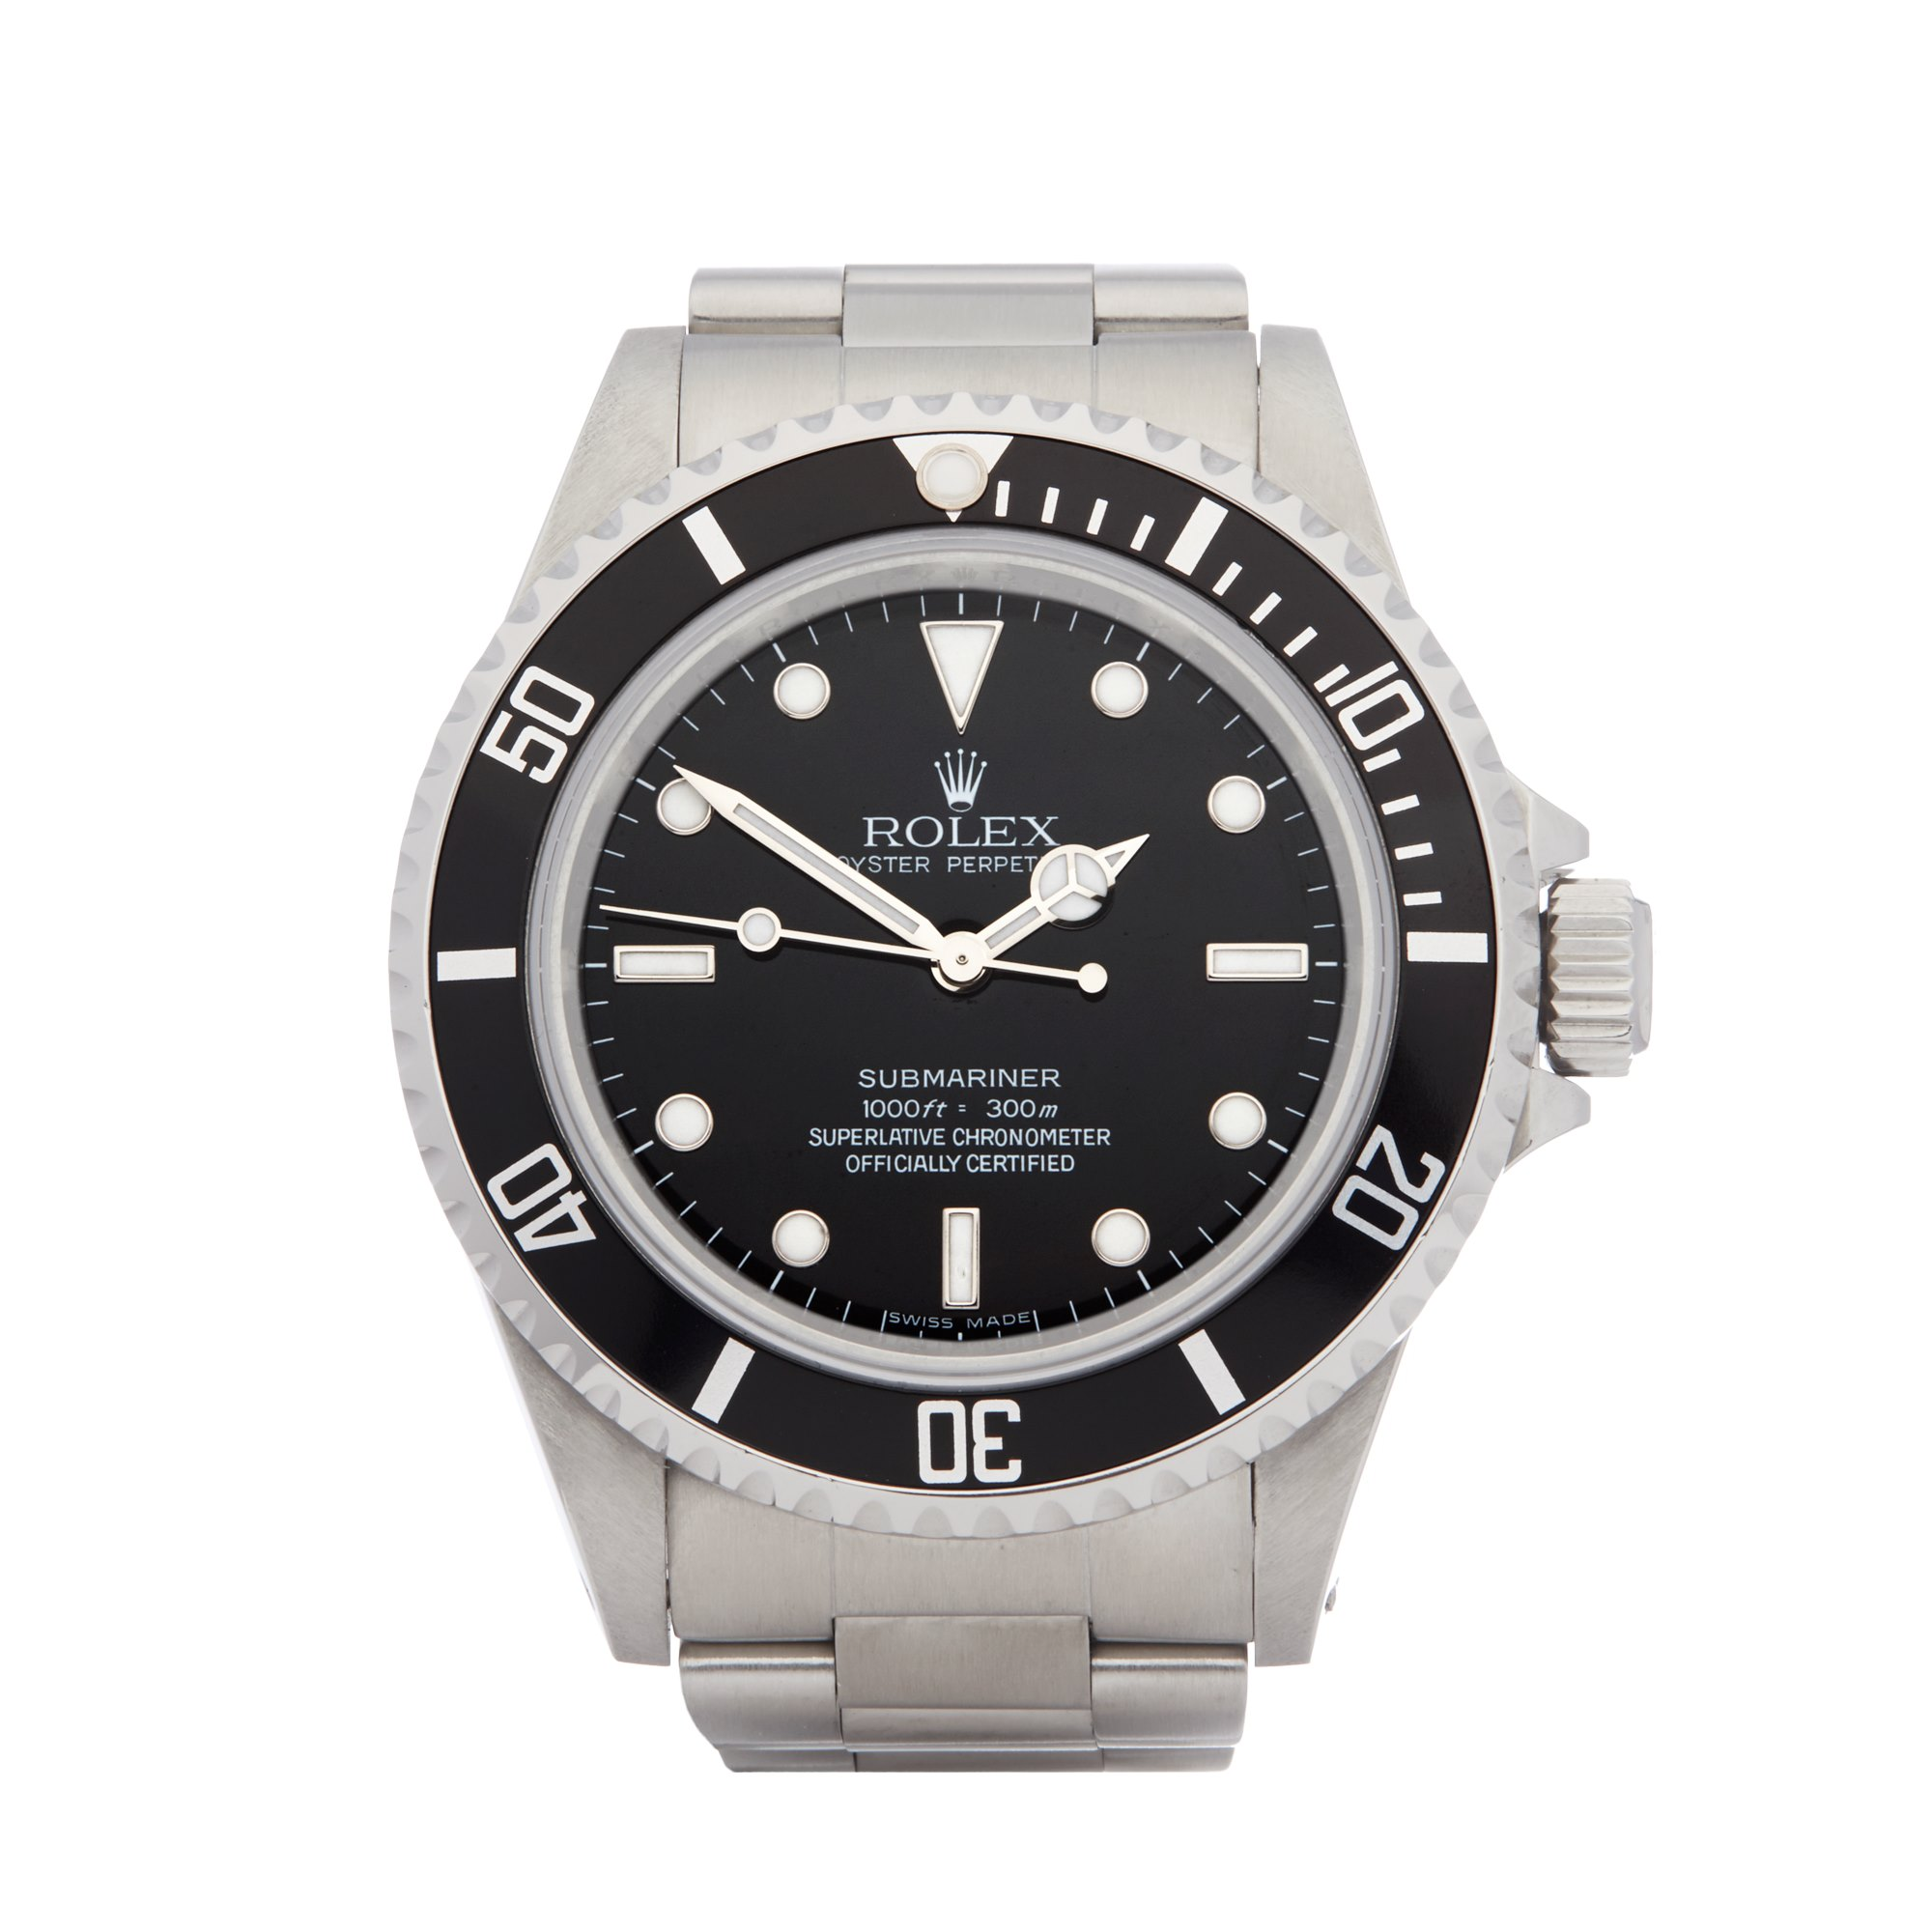 Rolex Submariner No Date Stainless Steel 14060M